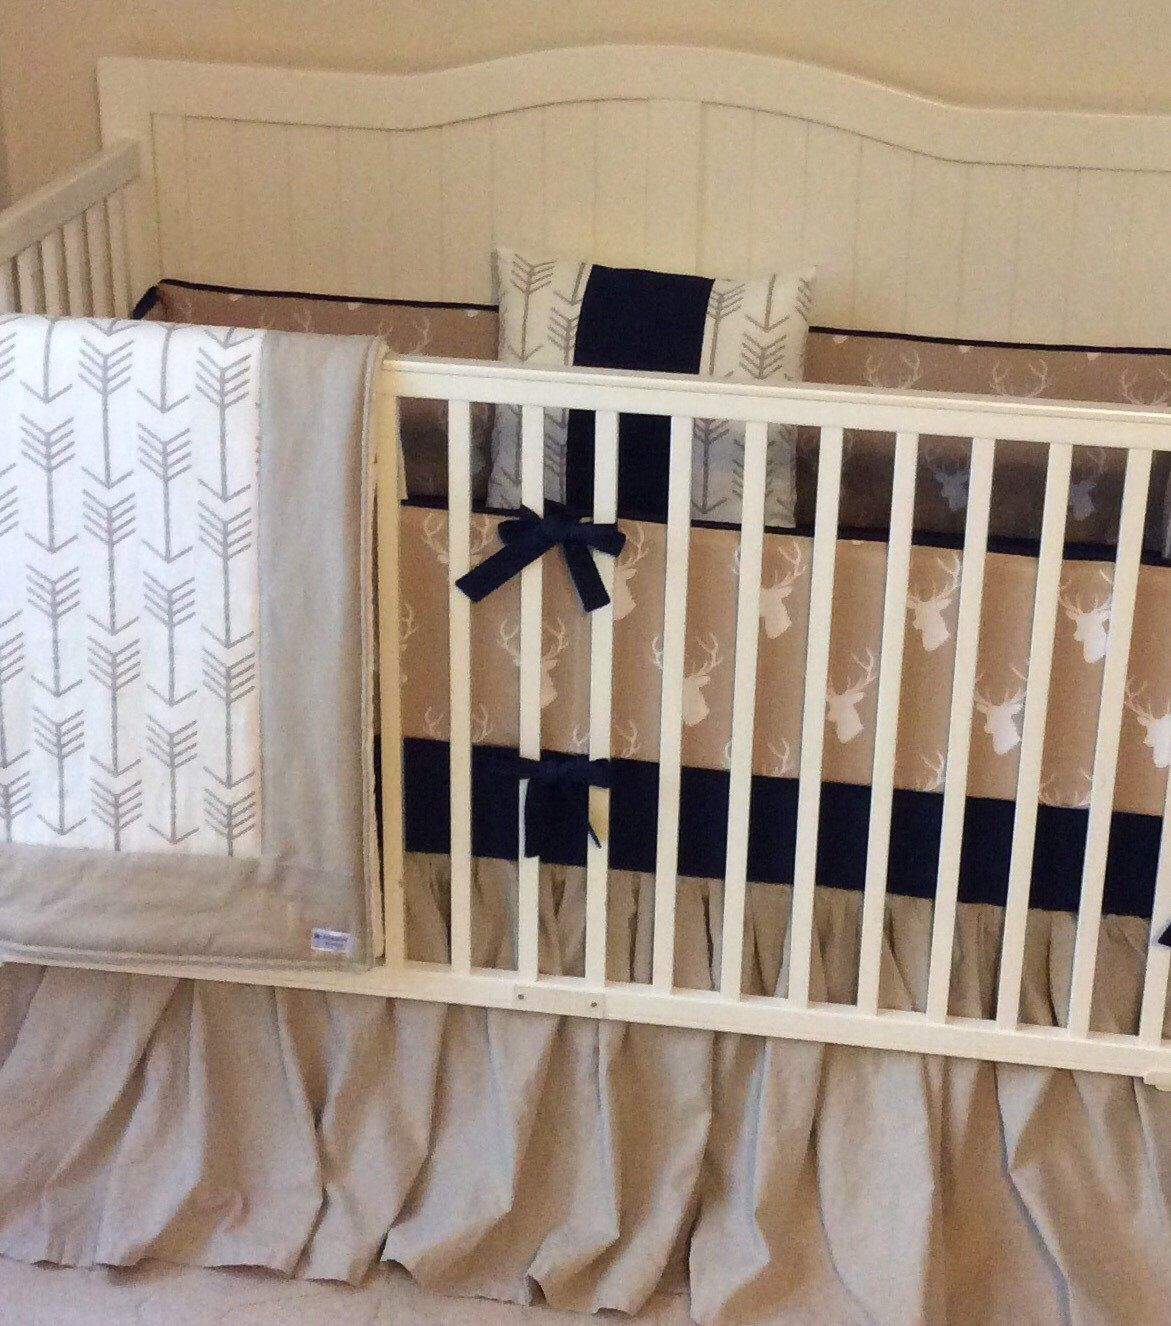 Crib Bedding Set Tan And Navy Stag Washed Linen Baby Boy Crib Bedding Crib Bedding Boy Rustic Baby Bedding